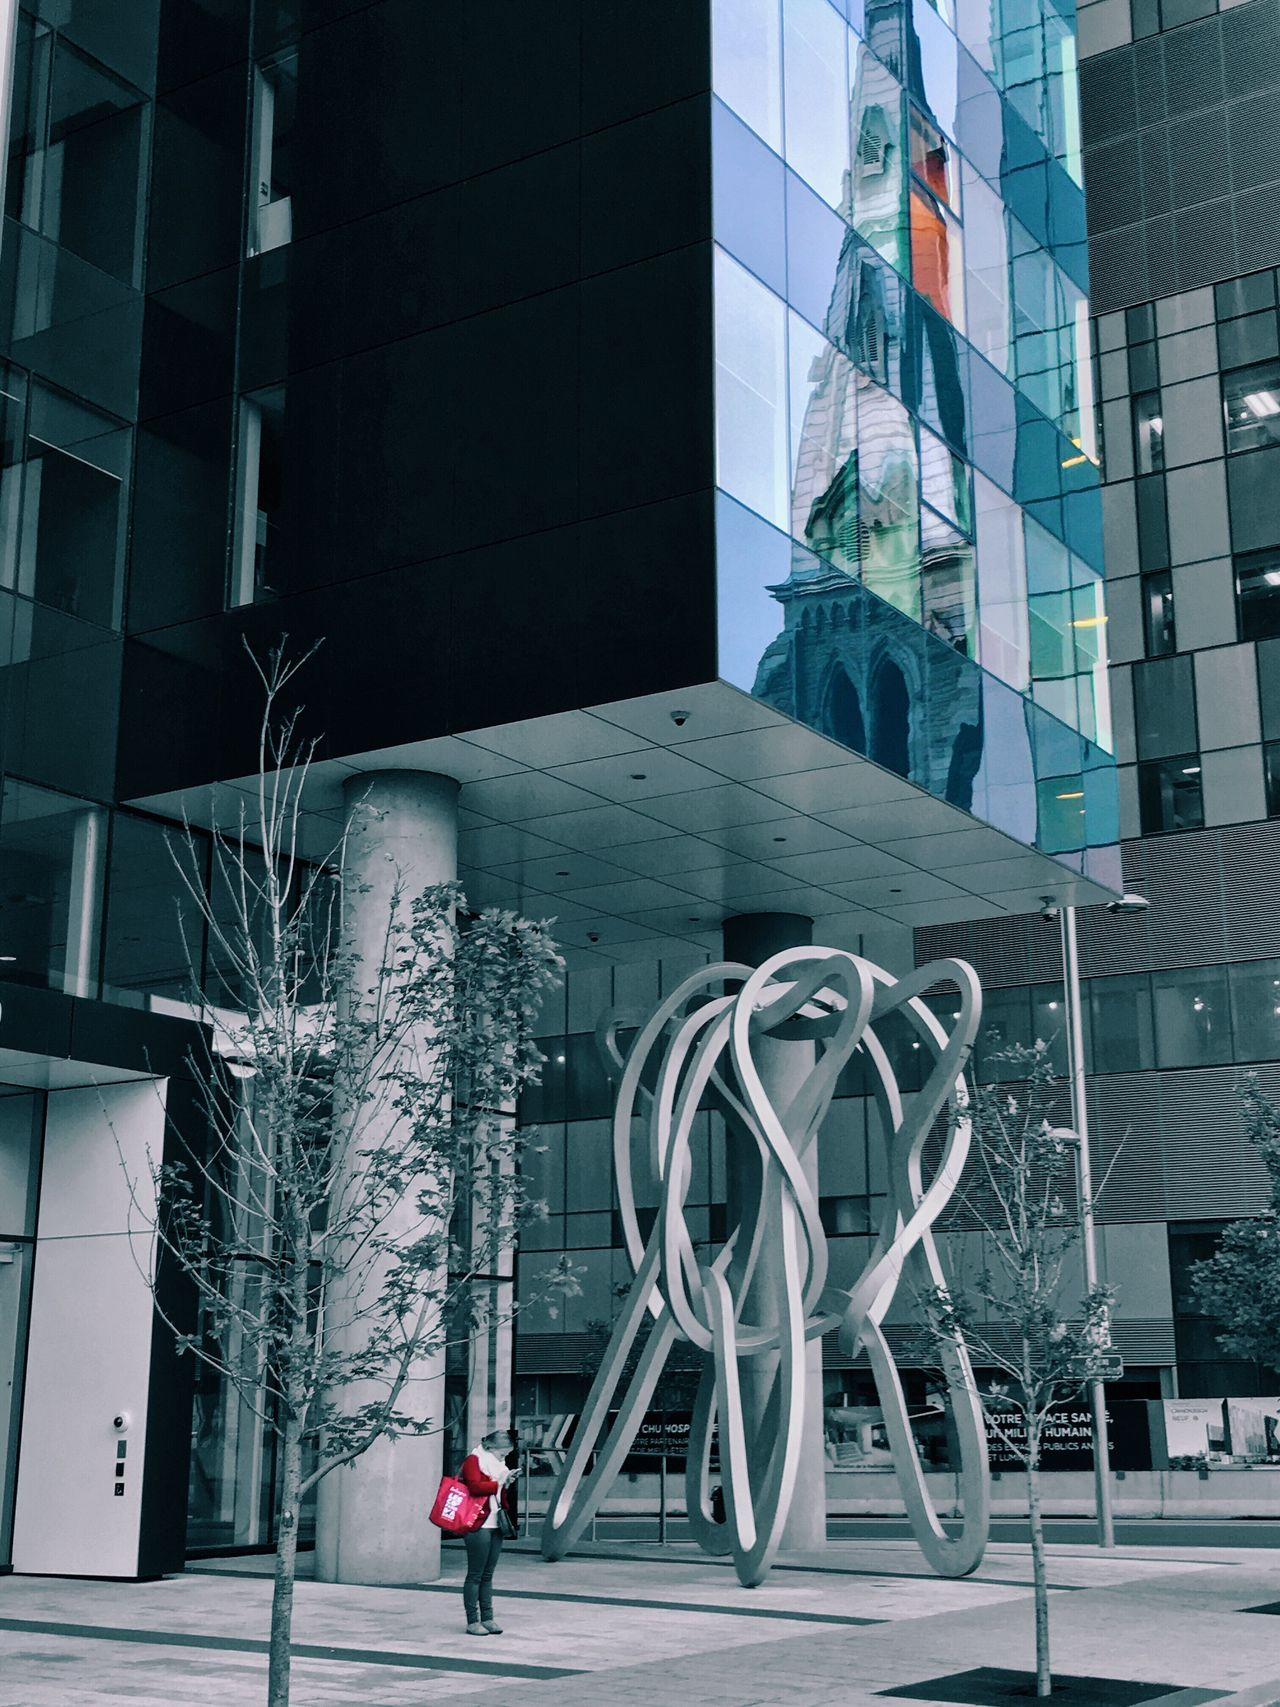 Building Exterior Architecture Technology Built Structure Modern Outdoors City Day Sky Reflection Teaching Hospital Chum